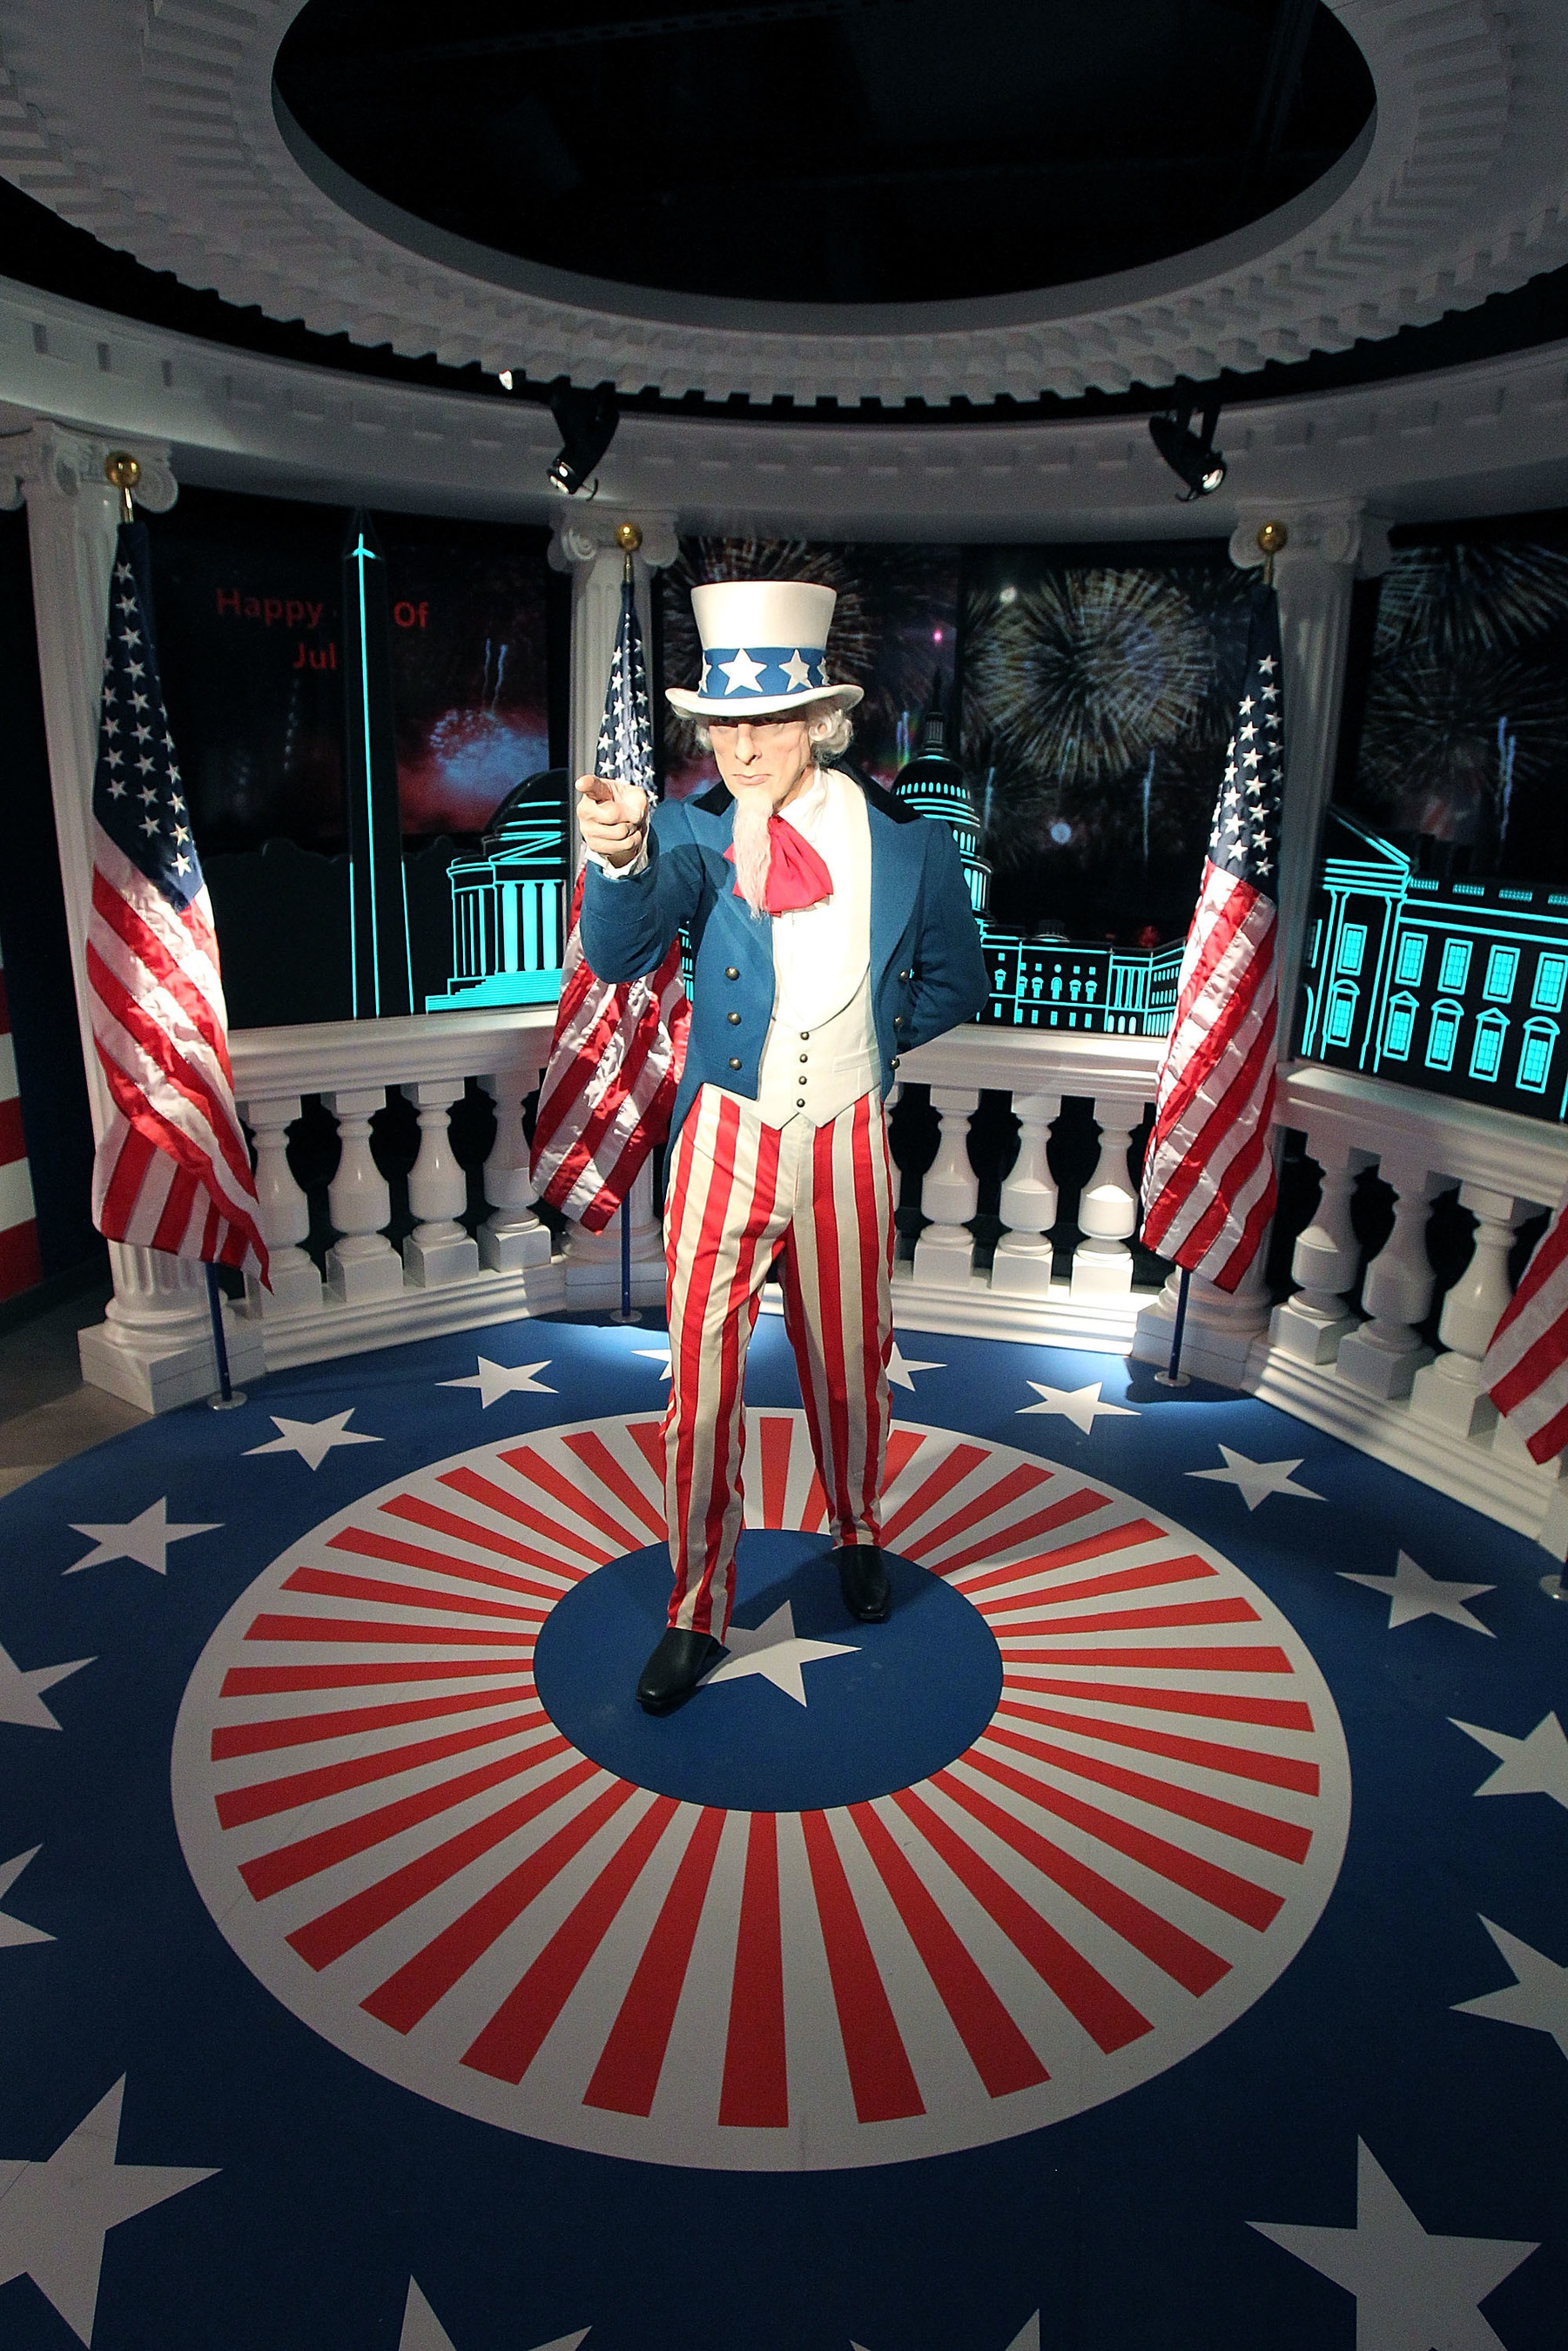 Madame Tussauds Washington, DC unveils brand new Fourth of July Experience featuring the wax figure of iconic Uncle Sam. (Photo Credit: Paul Morigi/Getty Images for Madame Tussauds Washington, DC)